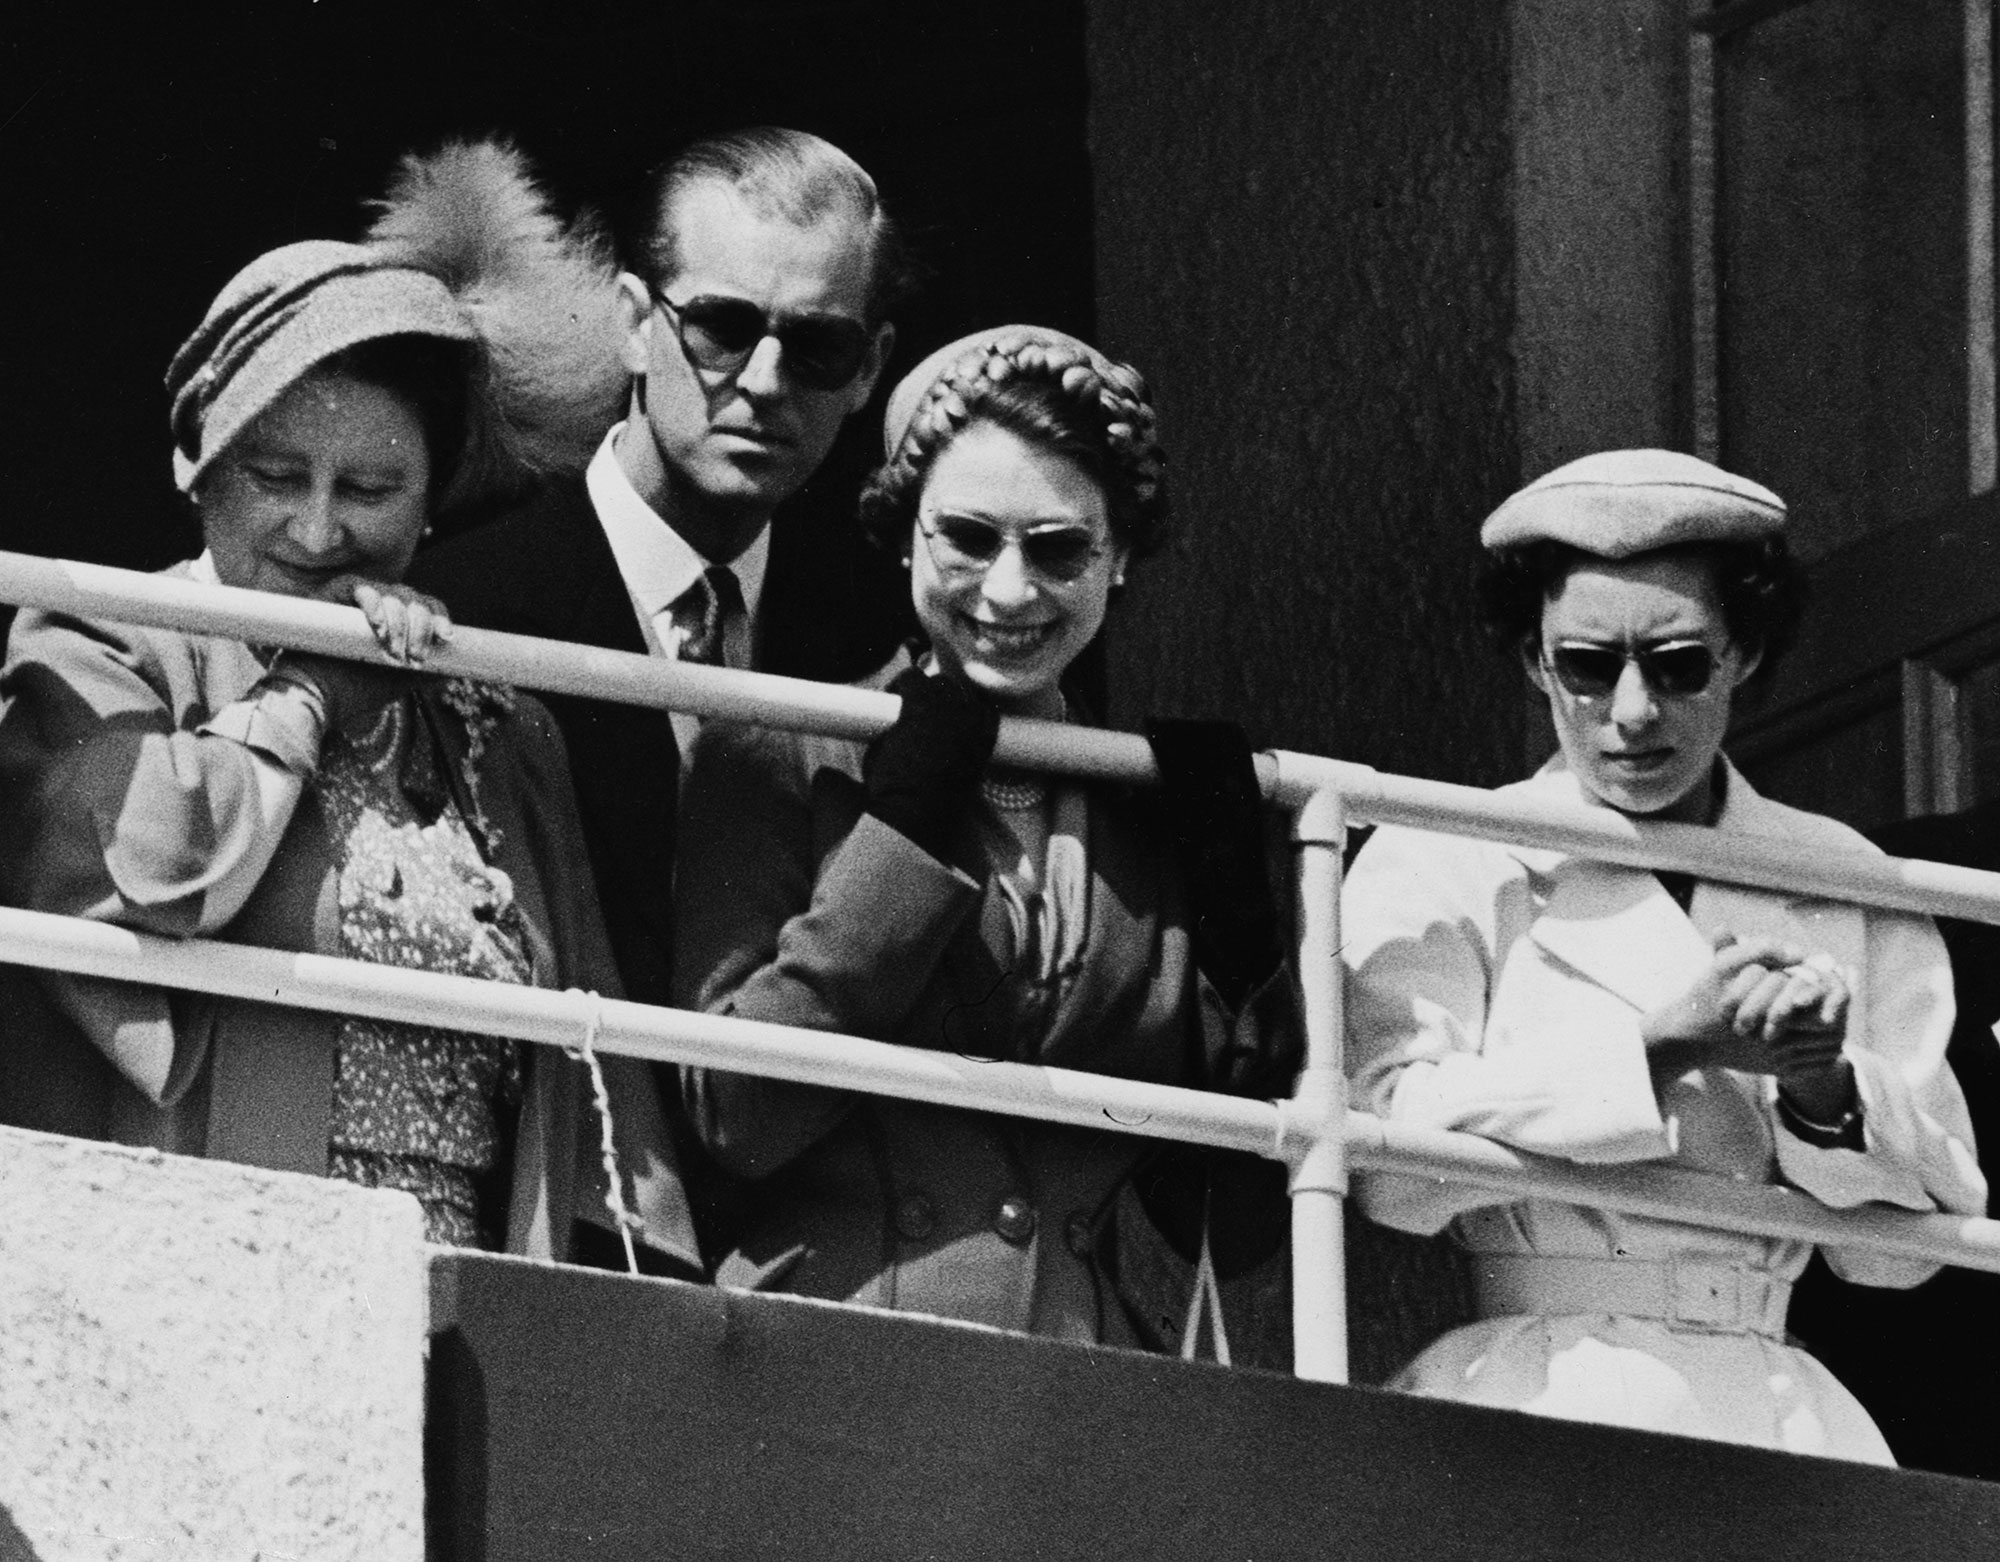 Queen Elizabeth II And Family At The Races